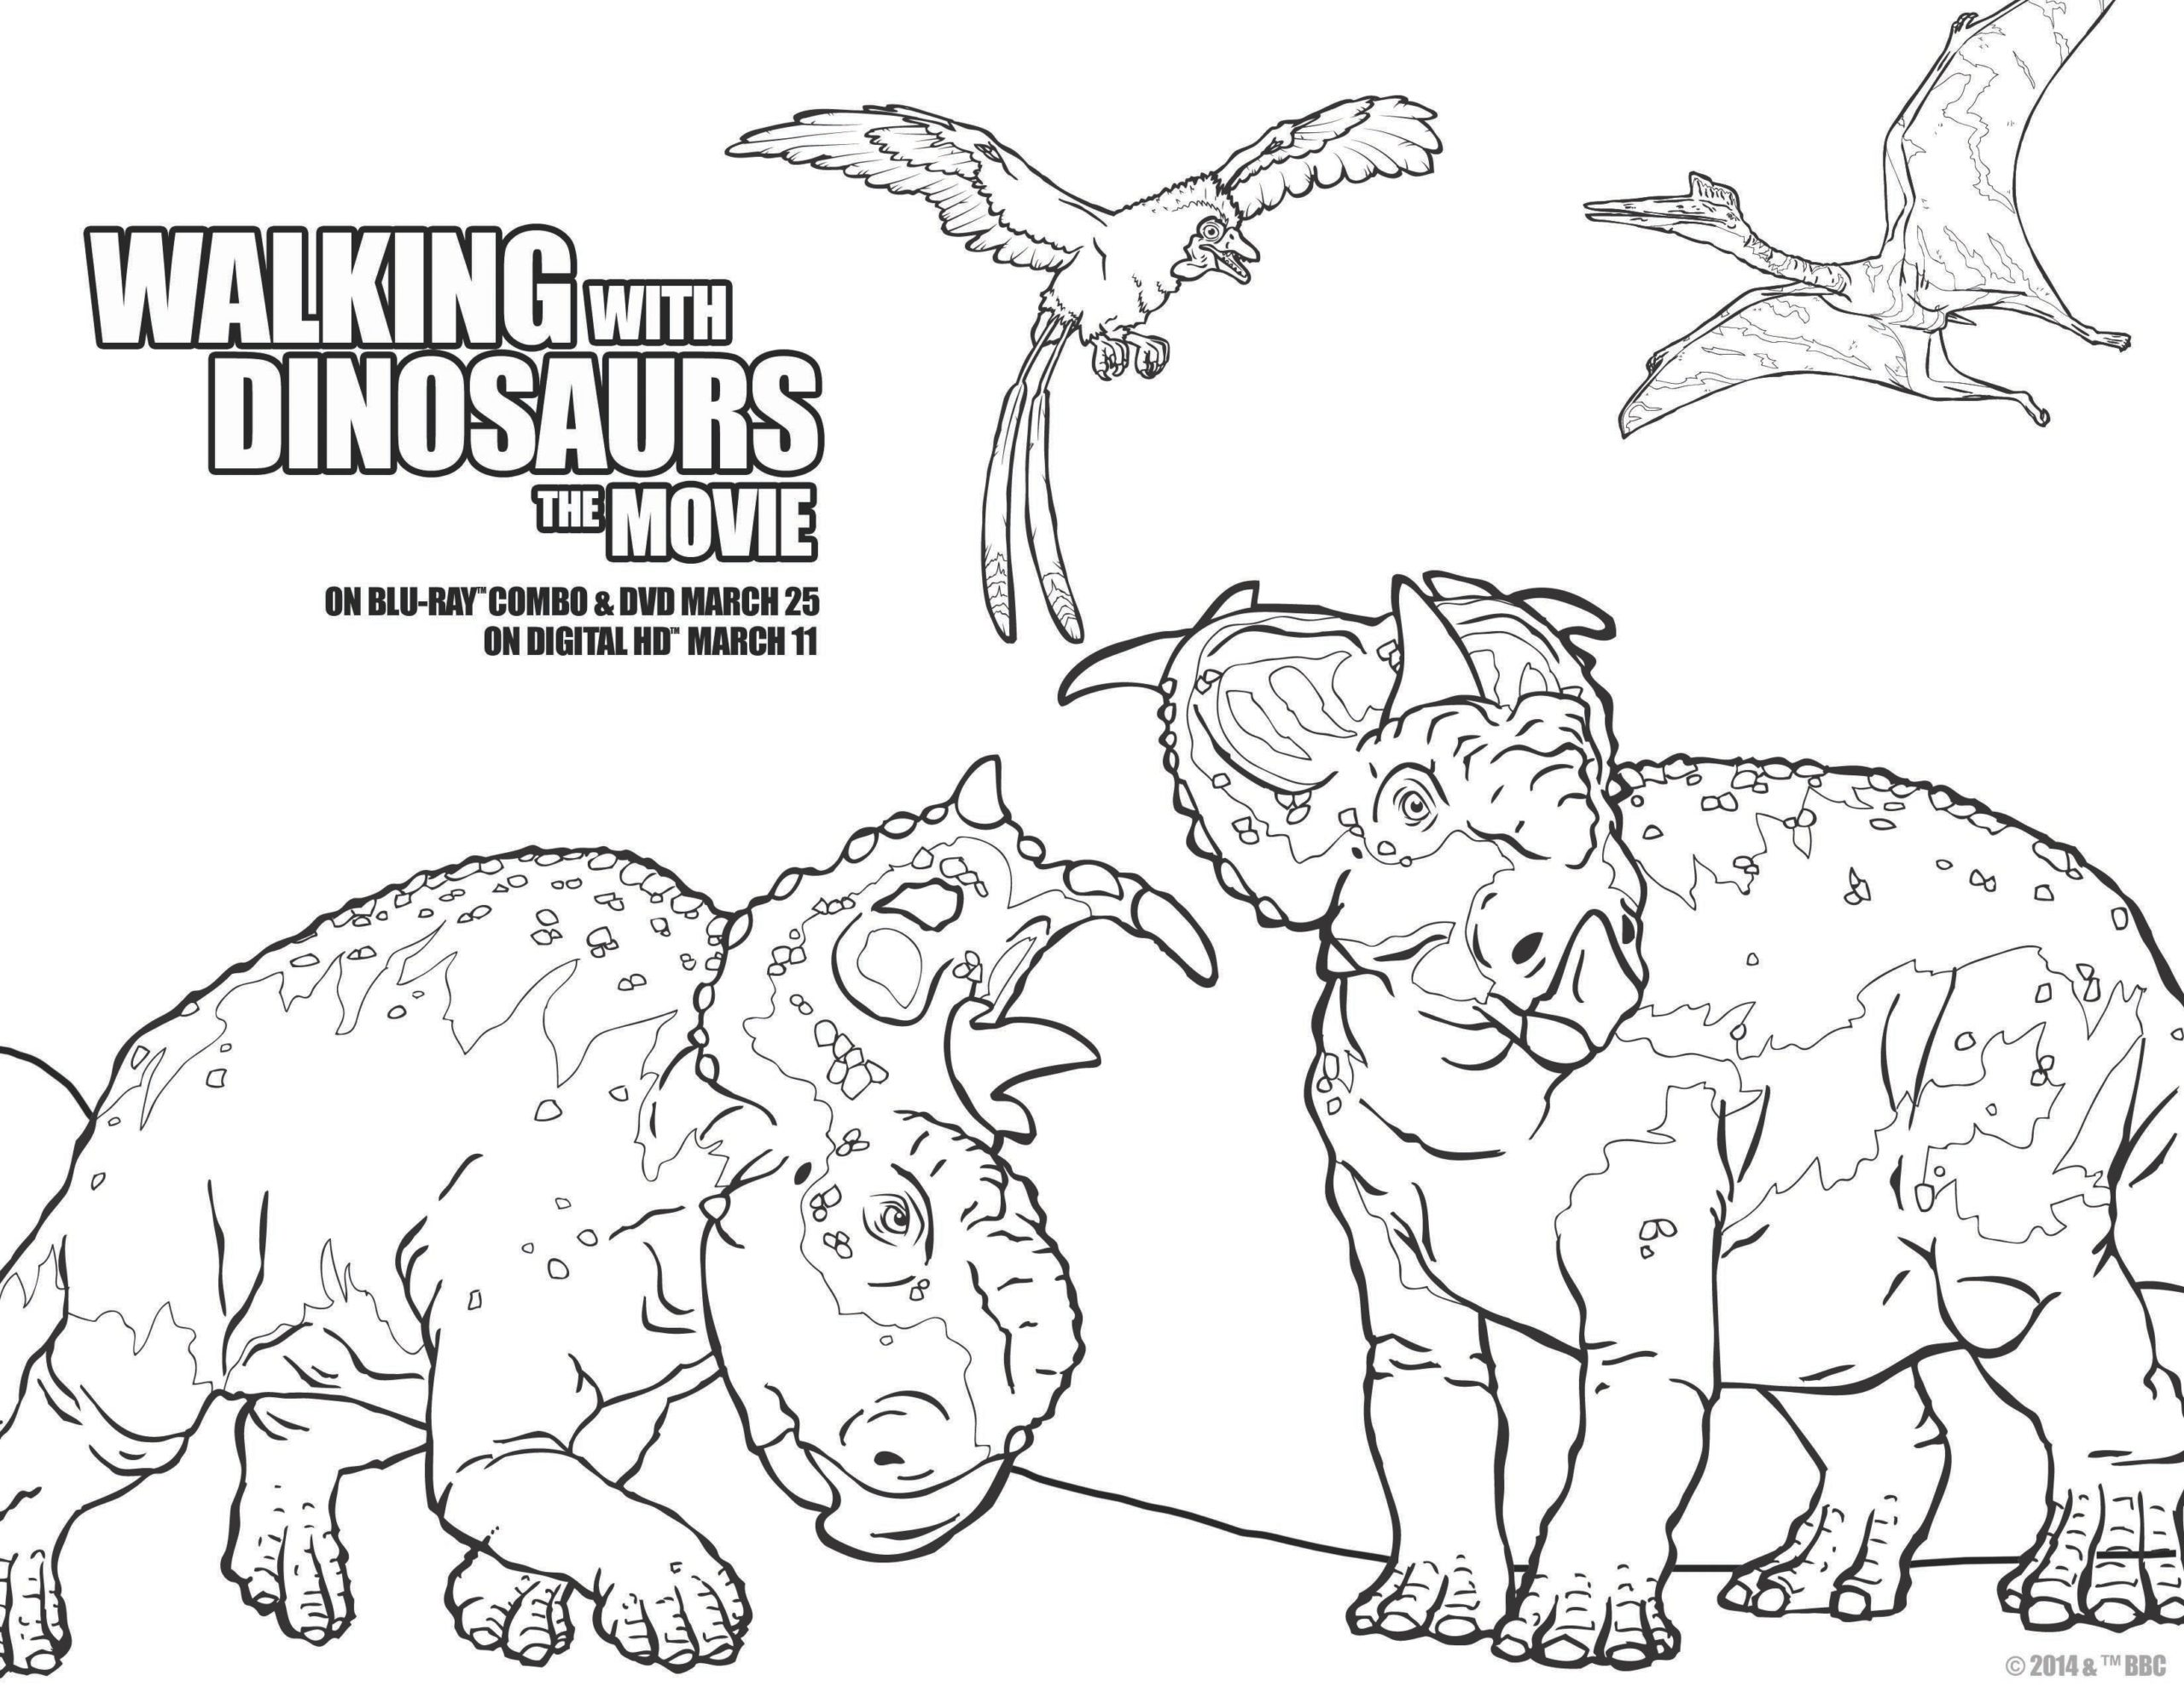 Walking With Dinosaurs walking into your home on Blu-ray